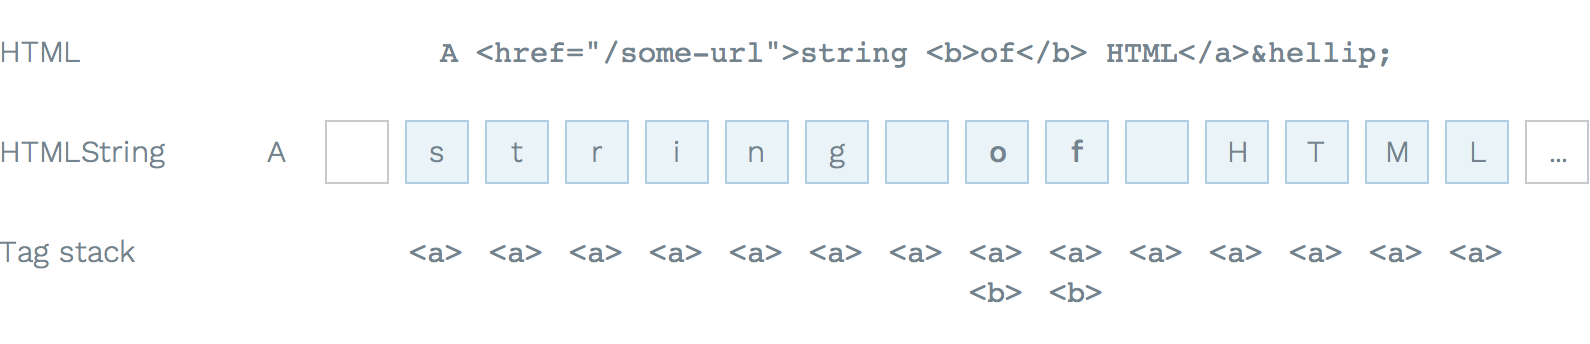 Structure of a HTML string